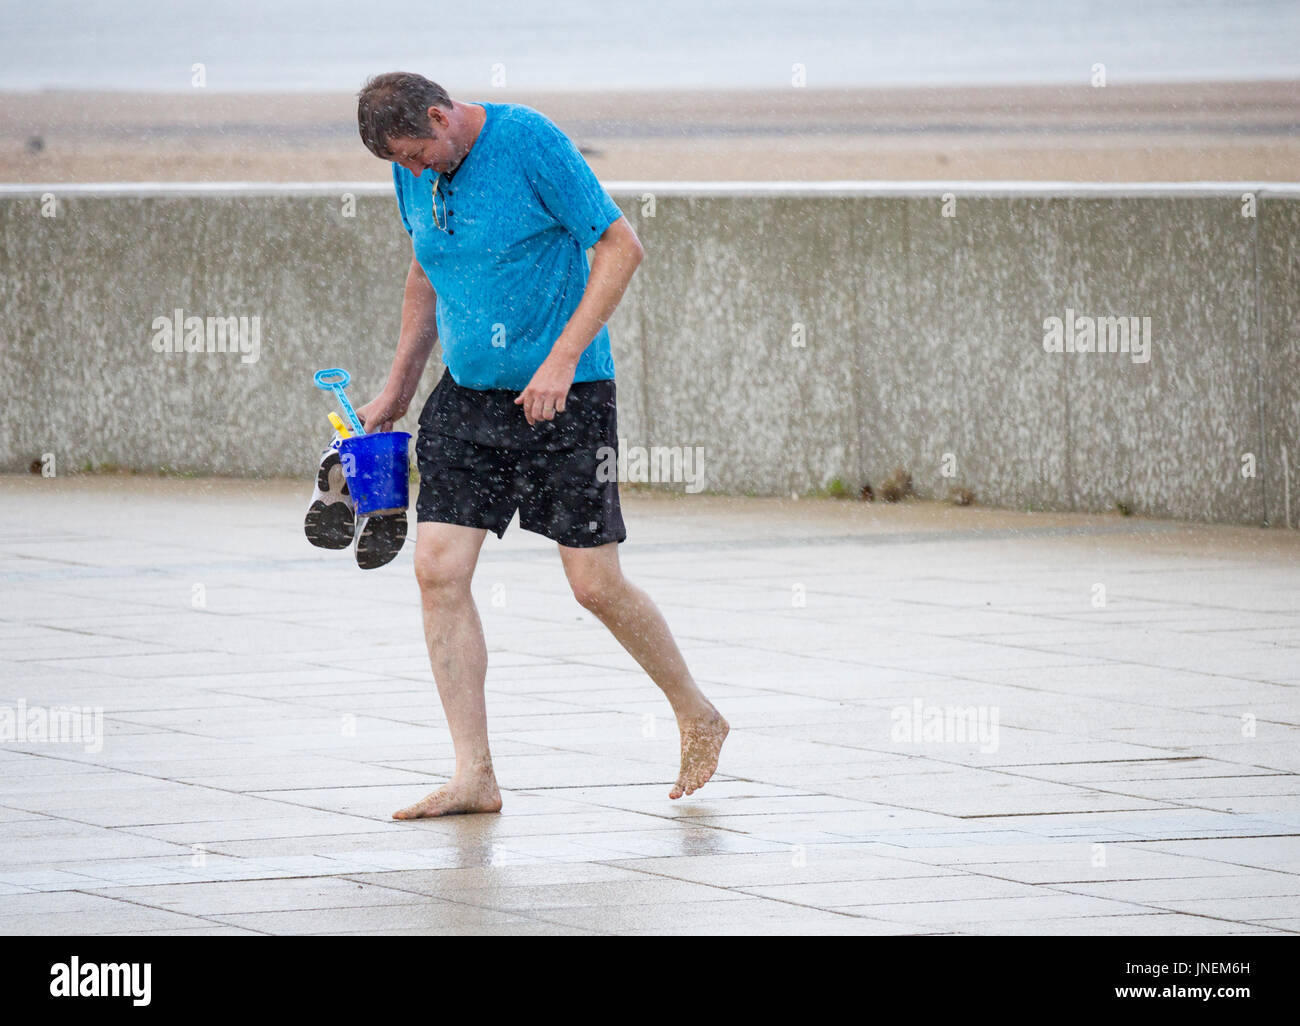 Seaton Carew, county Durham, England, UK. 30th July, 2017. Weather: Sunshine and heavy showers at Seaton Carew on the north east coast on Sunday afternoon. PICTURED: people run from the beach as a heavy rain shower replaces the warm sunshine. Credit: ALAN DAWSON/Alamy Live News - Stock Image